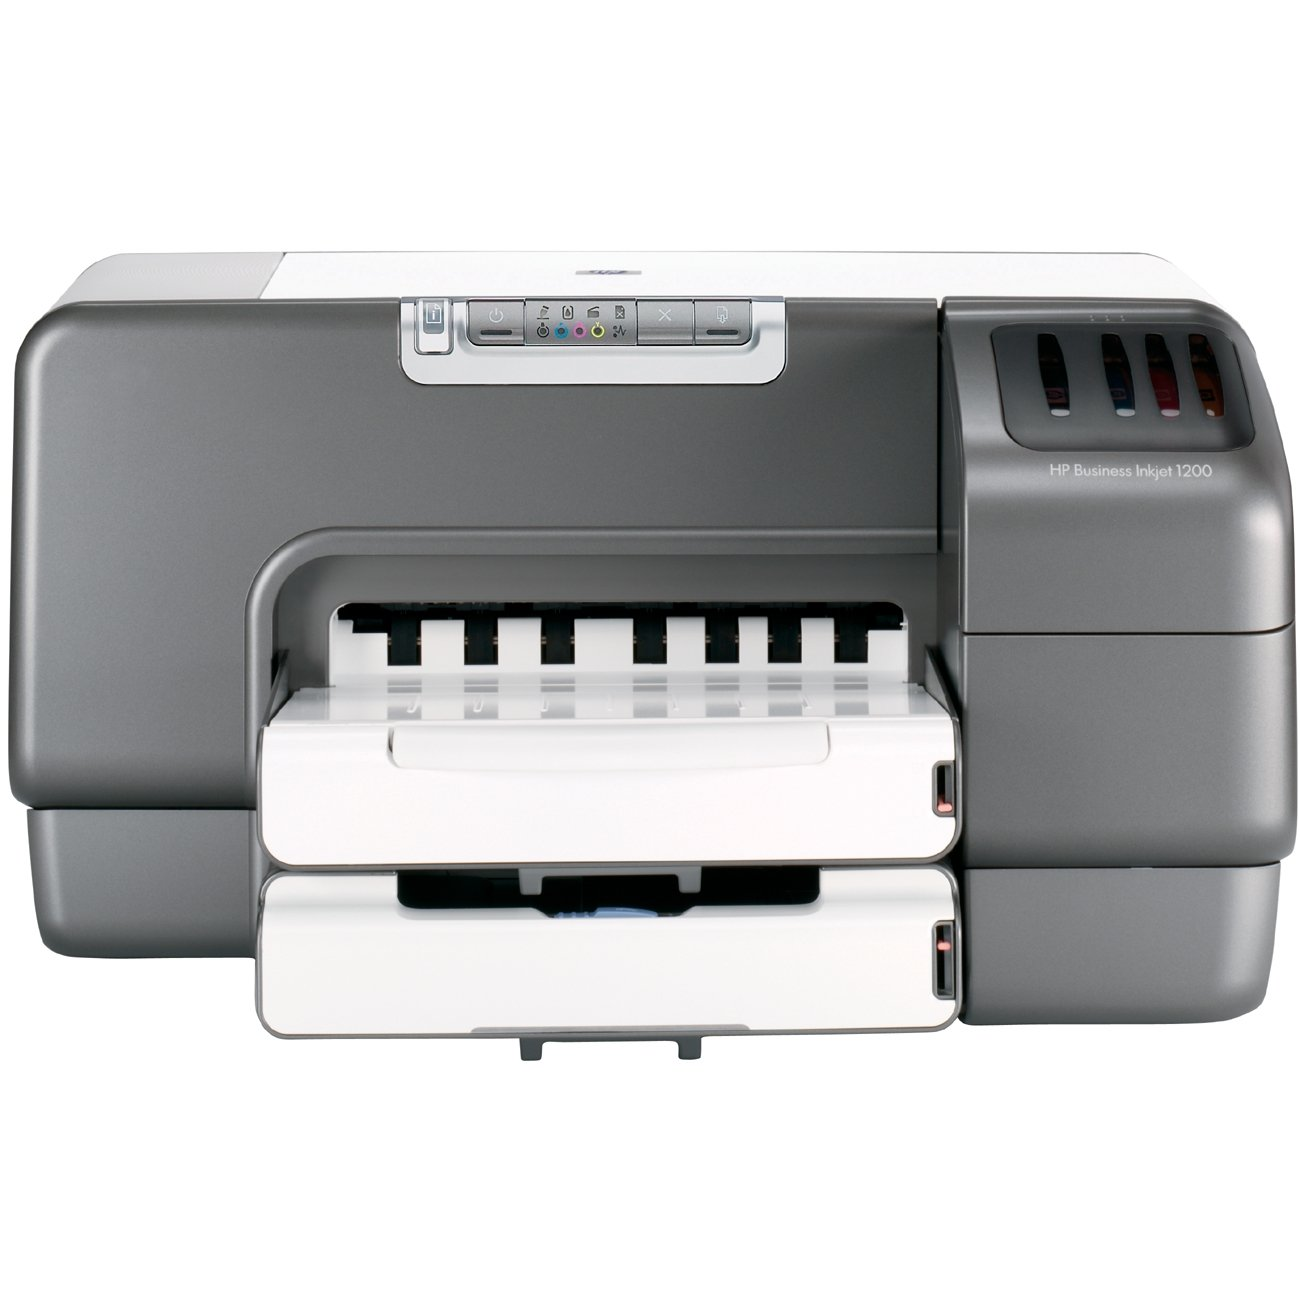 HP Business Inkjet 1200dtn Ink Cartridges